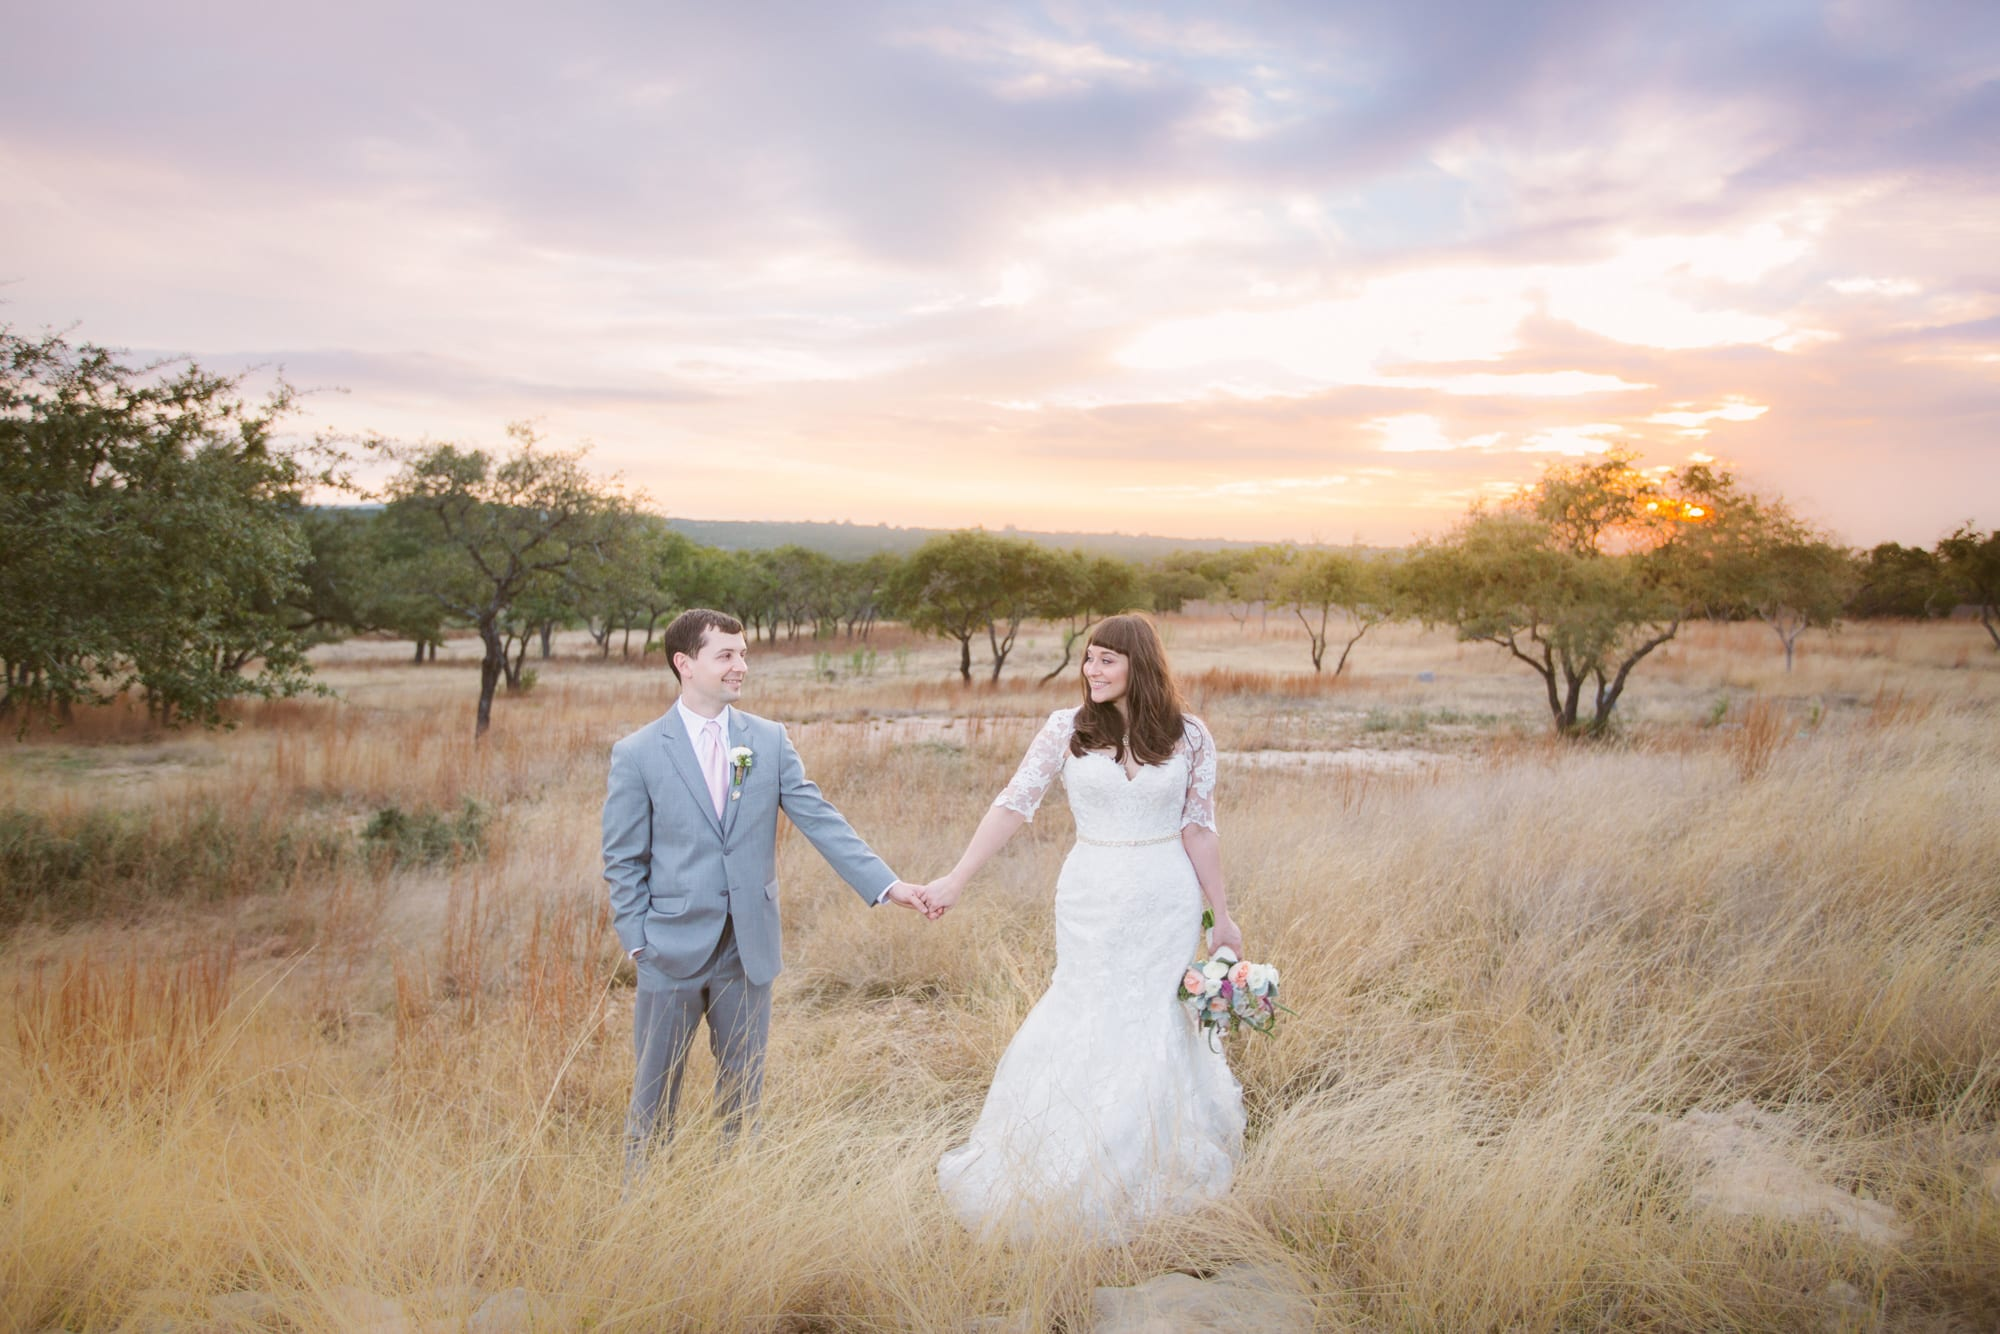 A bride and groom stand in field holding hands while photographers capture the romance